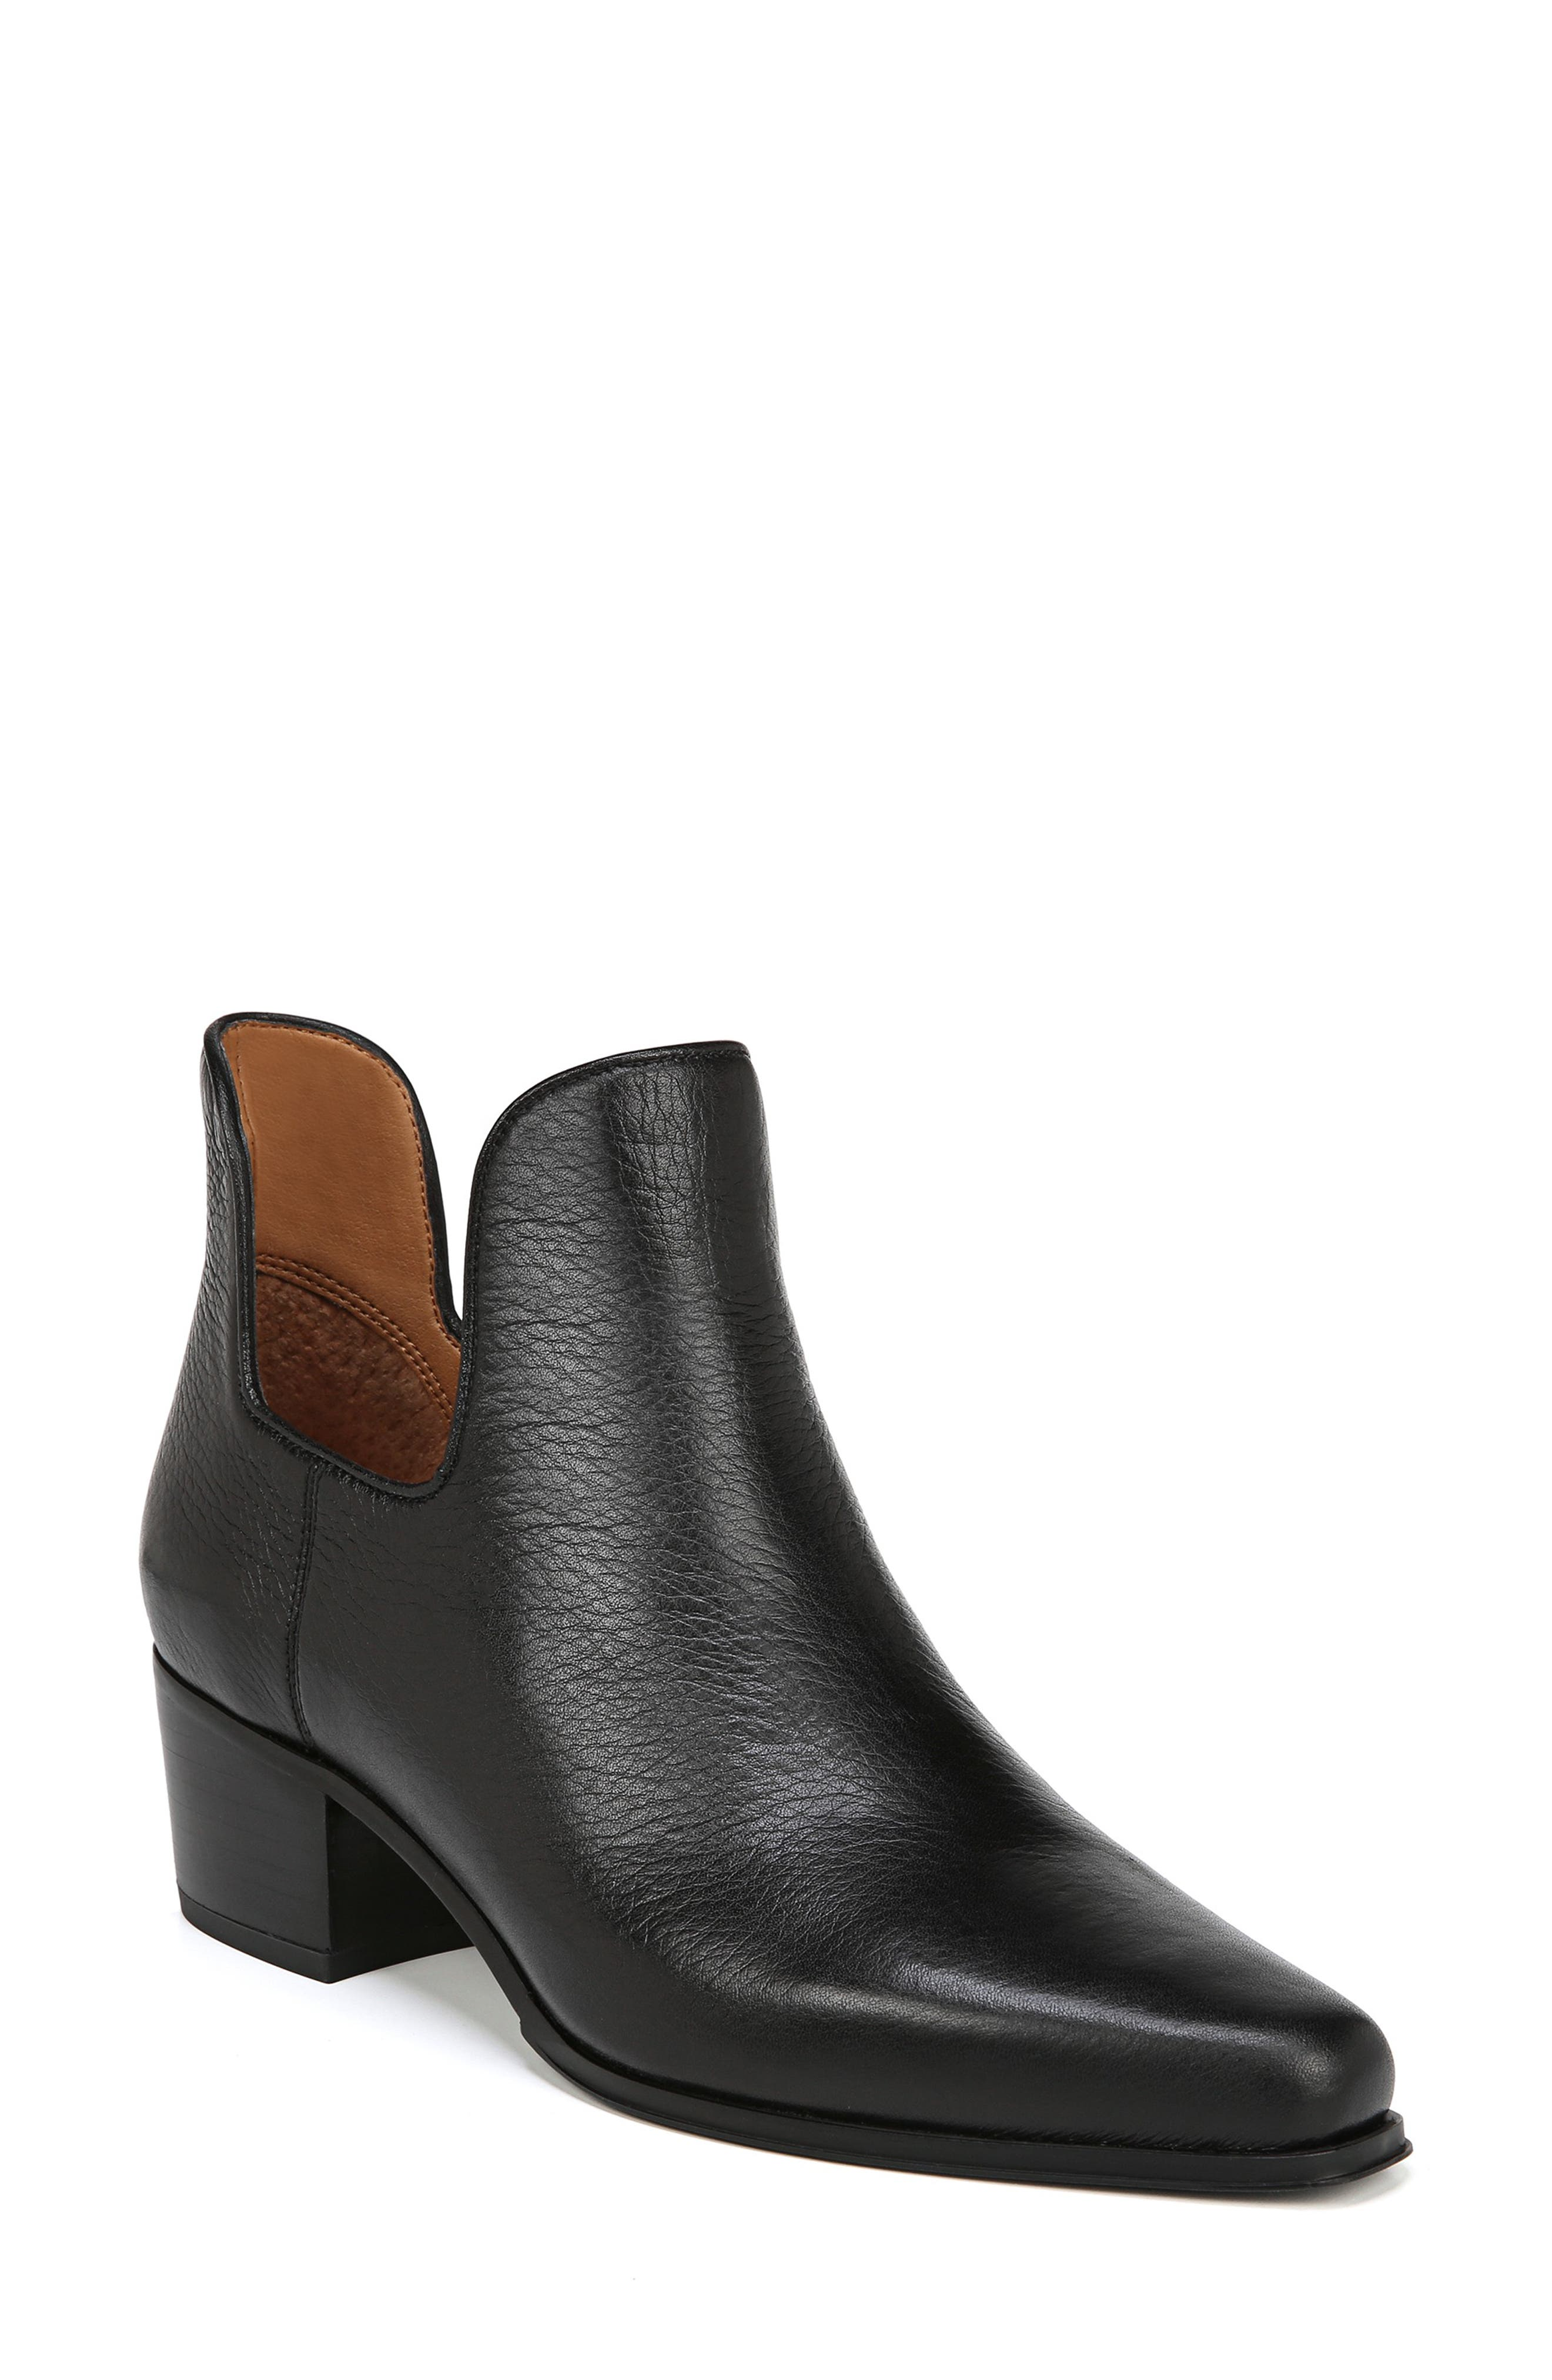 Ashbury Bootie,                         Main,                         color, BLACK TUMBLED LEATHER